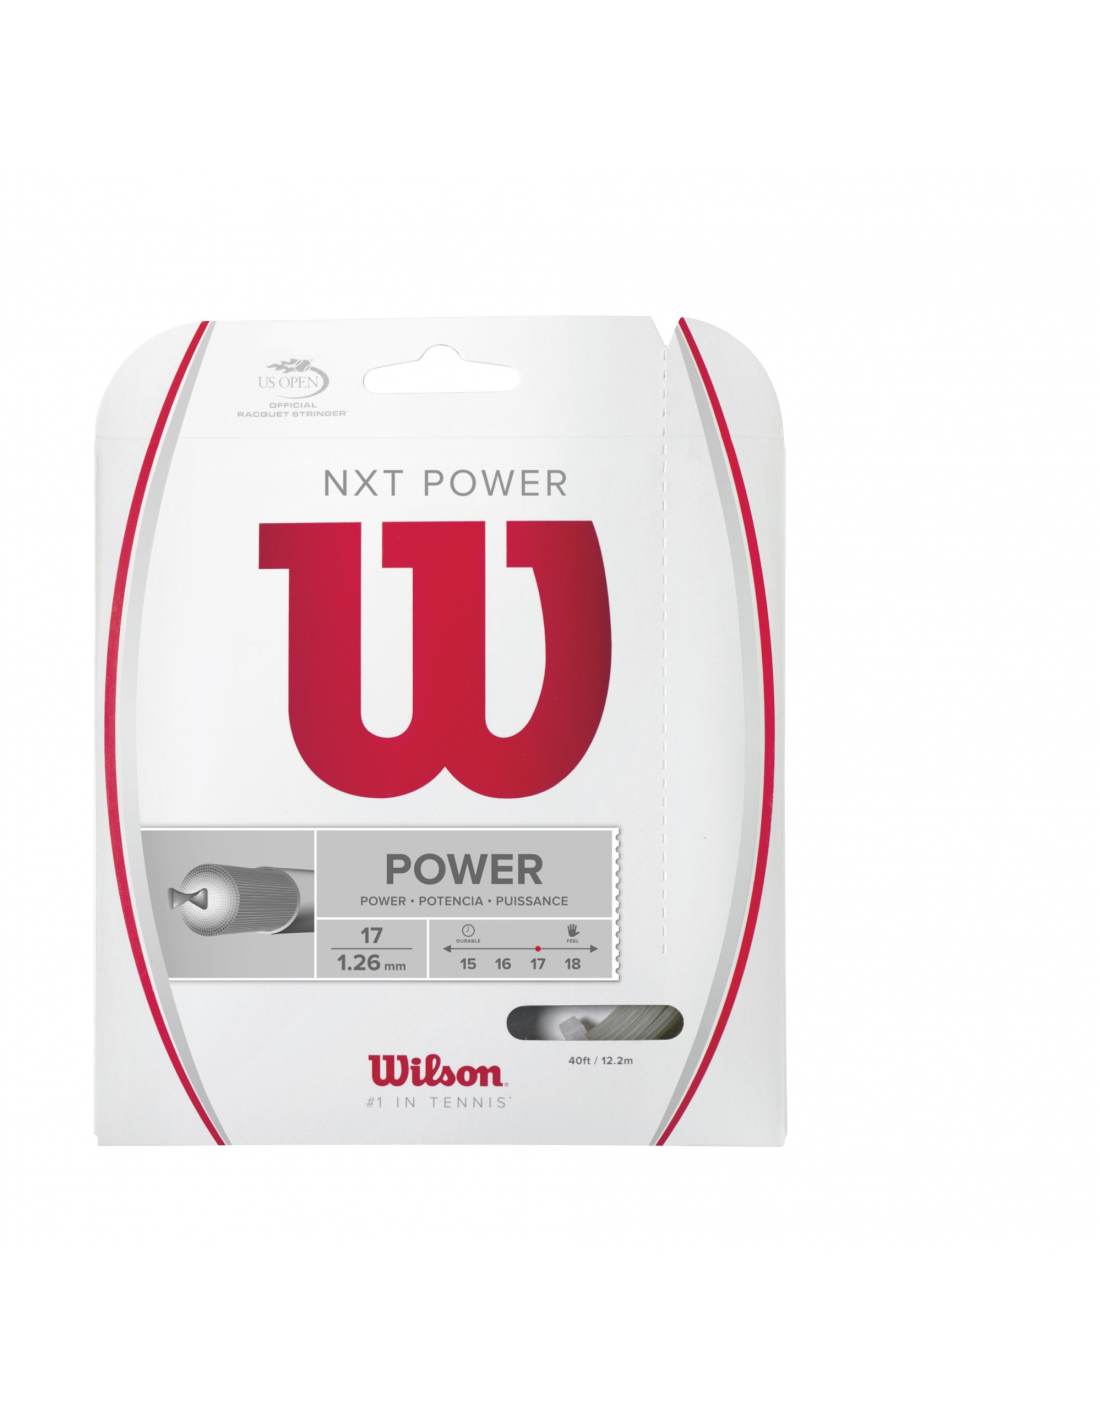 Corda Wilson Nxt Power Universotennis It